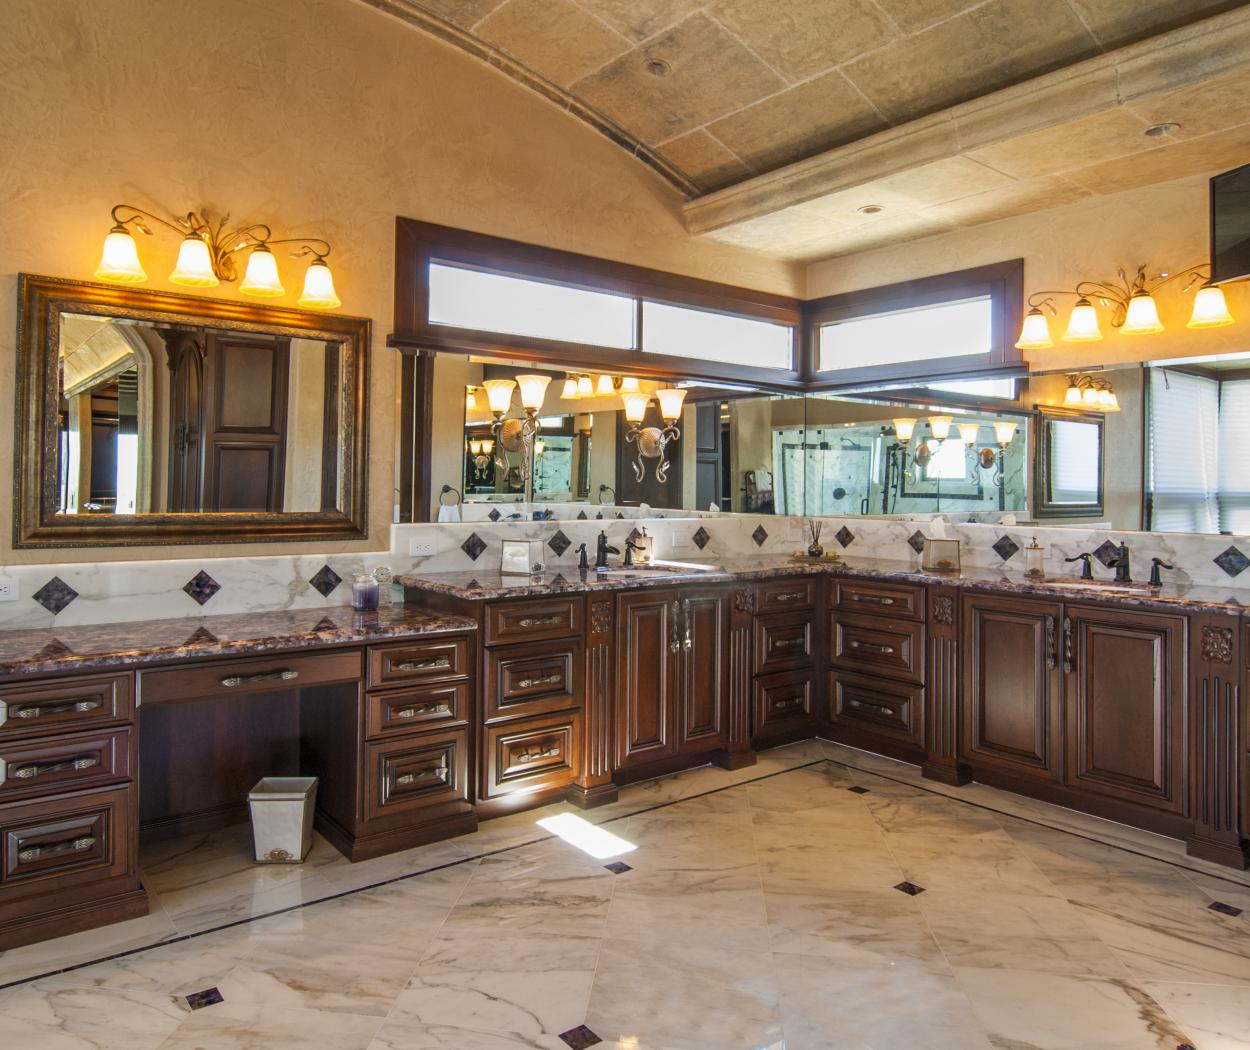 Traditional Master Bathroom Vanity with Double Sinks, Oil Rubbed Bronze Faucets and Beautiful Granite Counter Tops